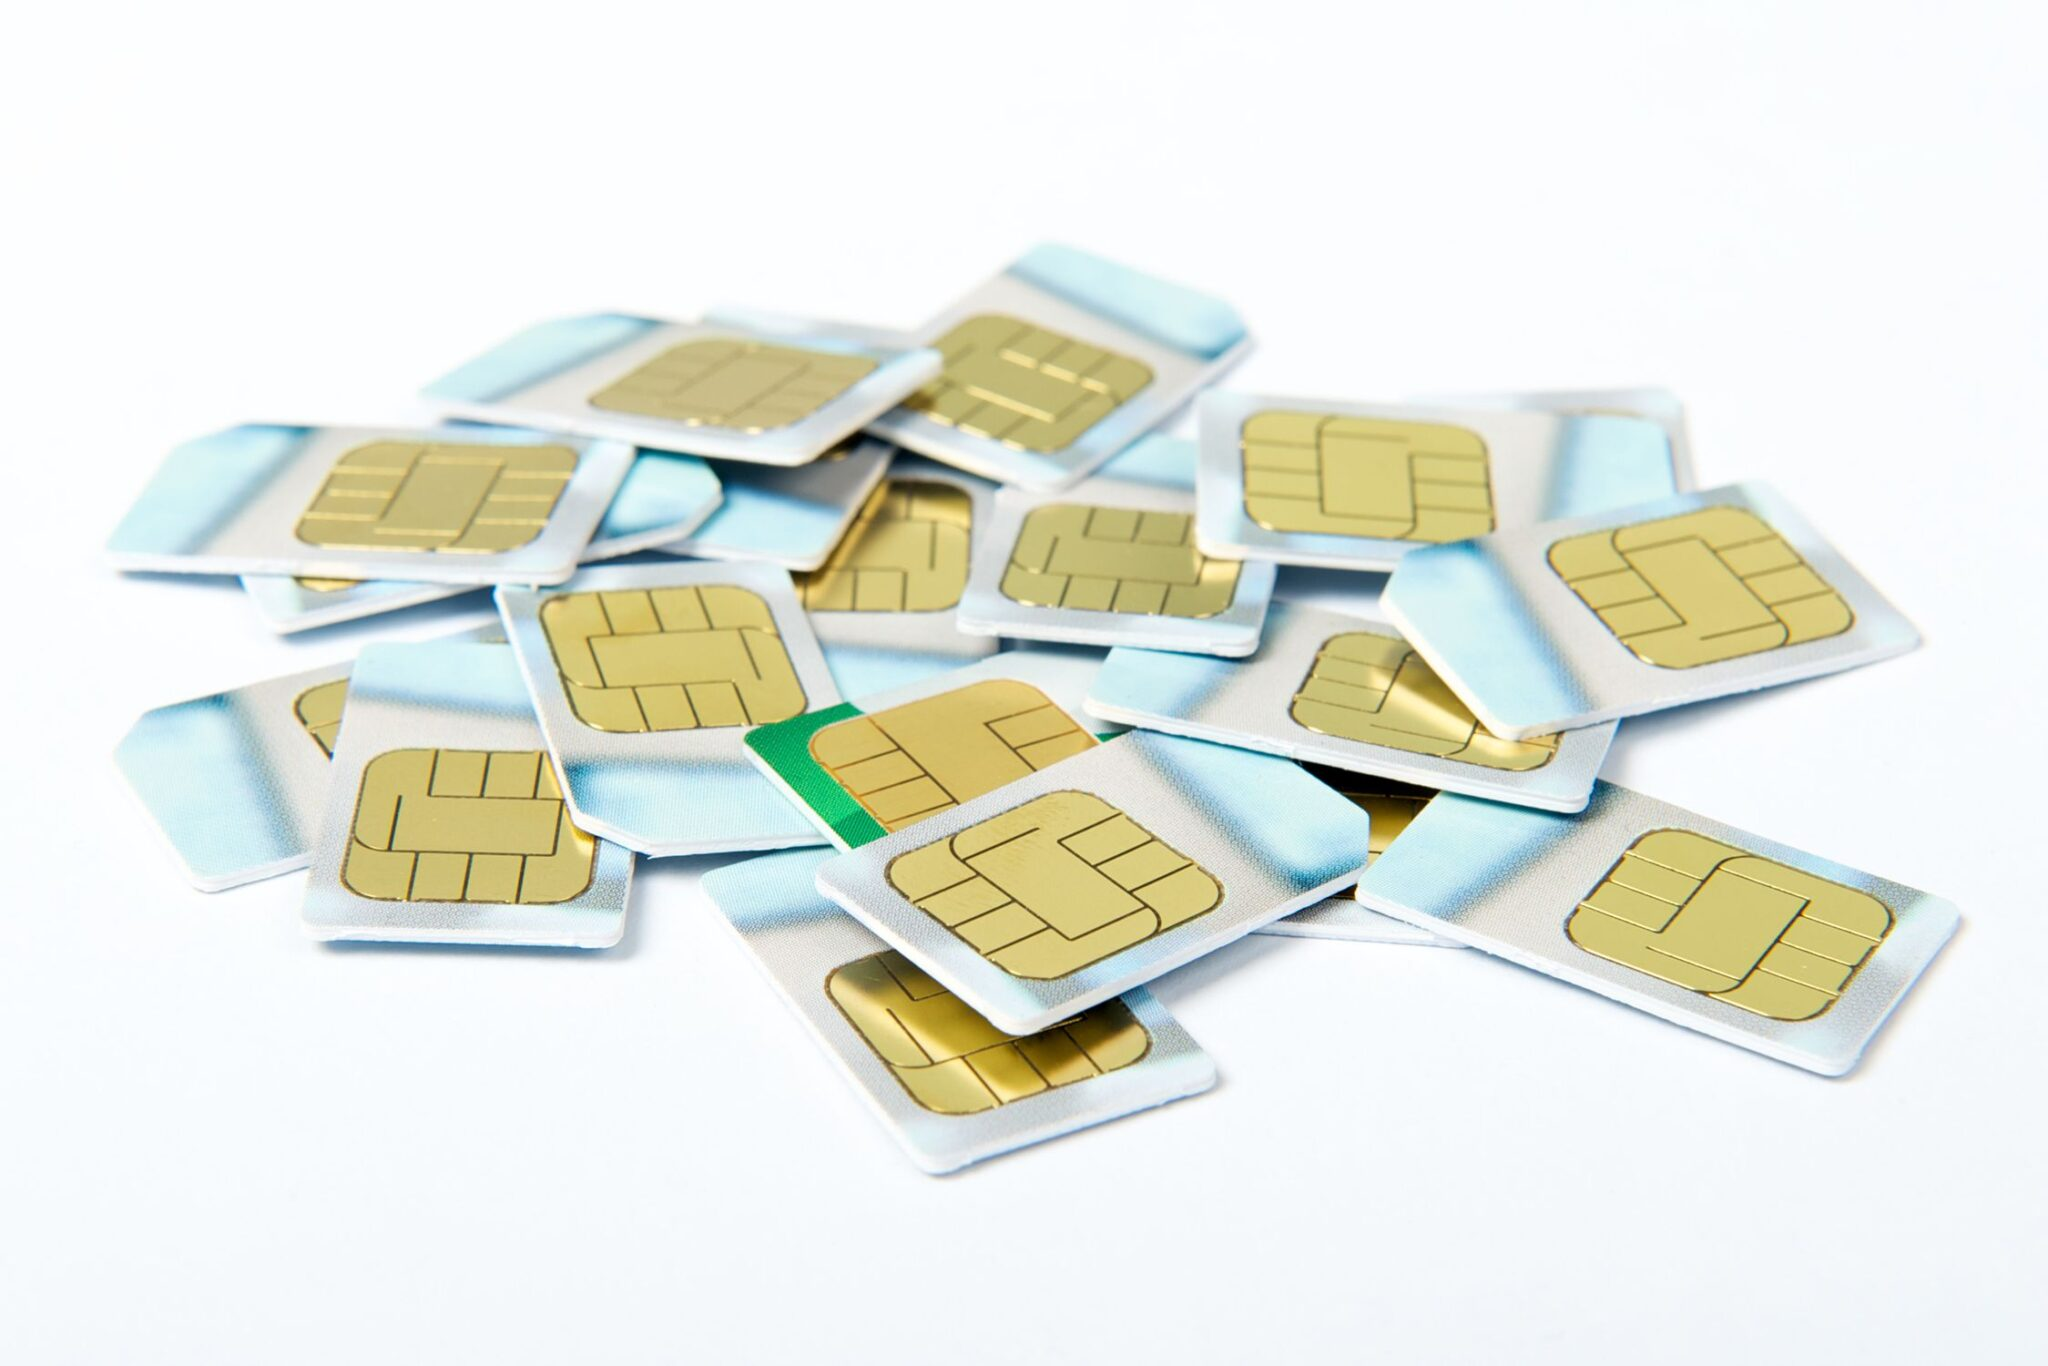 SIM cards without NIN to be blocked in January, SIM cards without NIN to be blocked in January, Effiezy - Top Nigerian News & Entertainment Website